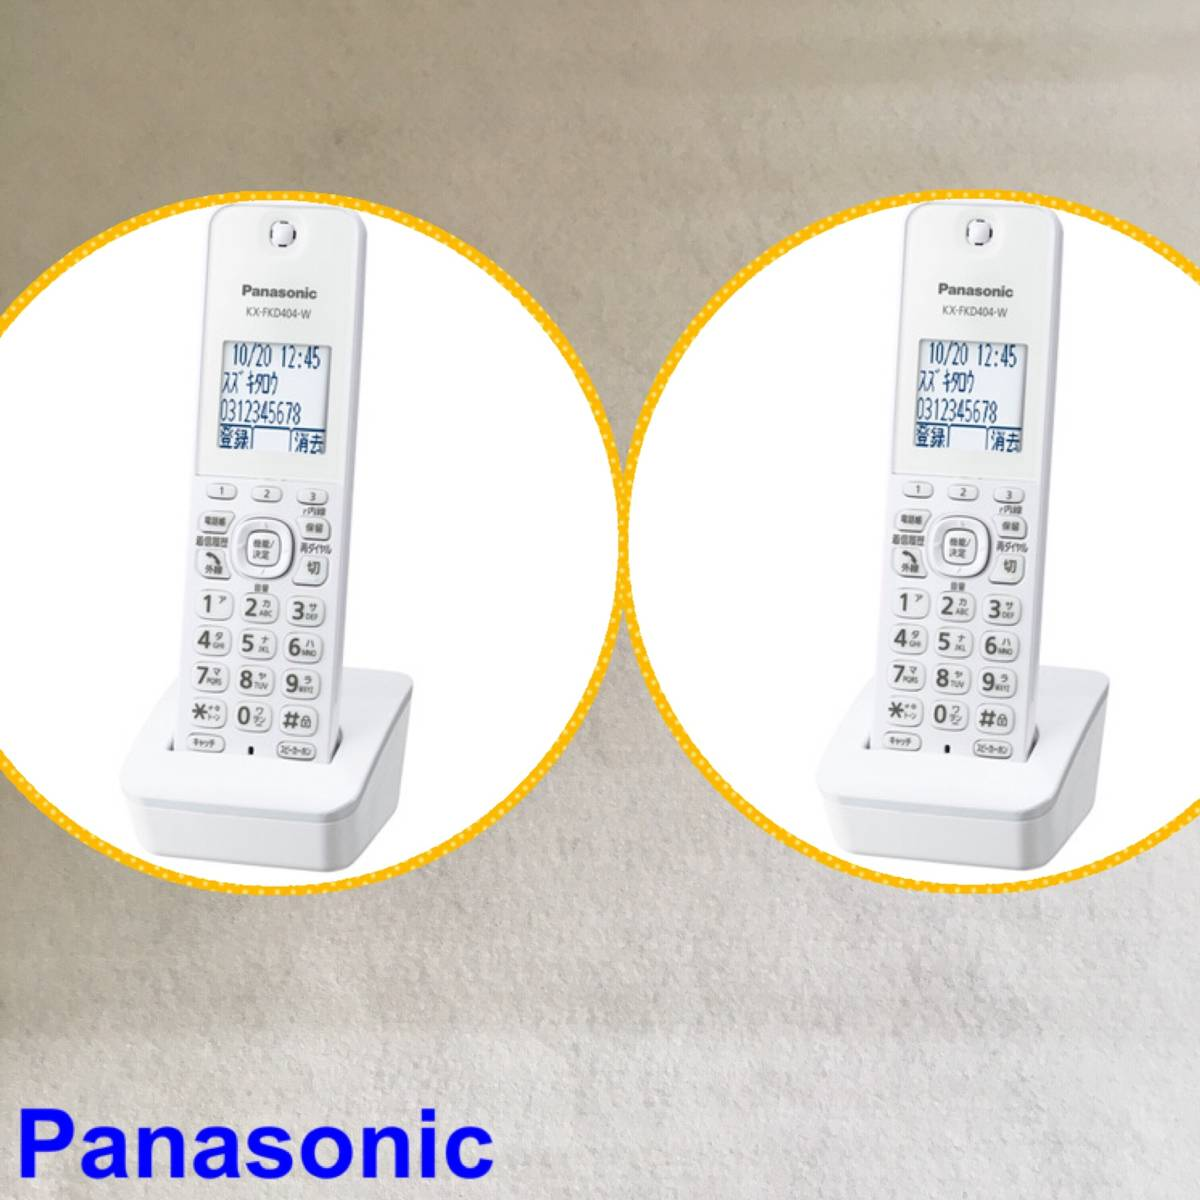 SD^ sending 0*2 piece * cordless cordless handset *Panasonic KX-FKD404-W extension cordless handset KX-PD304DL/KX-PD205DL/KX-PZ200DL/VE-GD26DL and so on telephone machine FAX consumer electronics